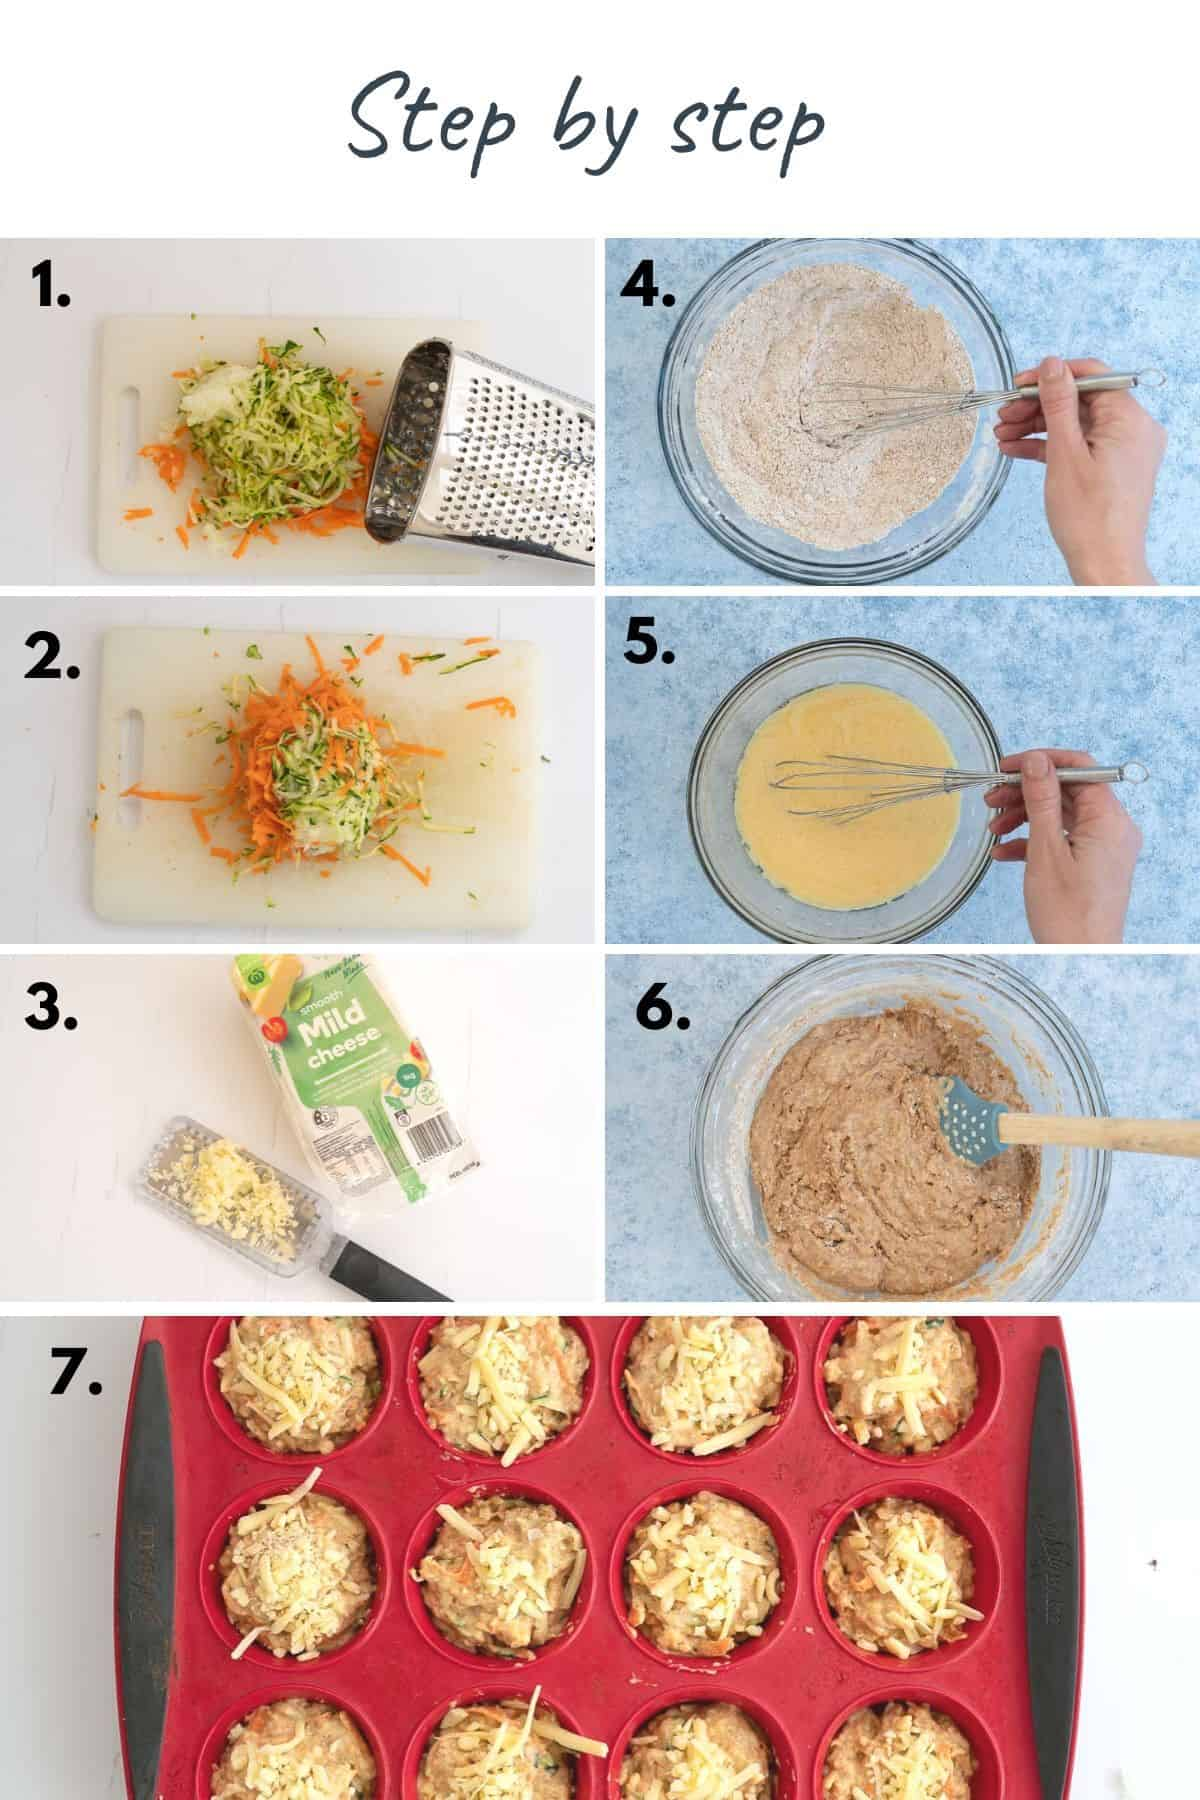 7 photo collage showing the steps to make savoury muffins